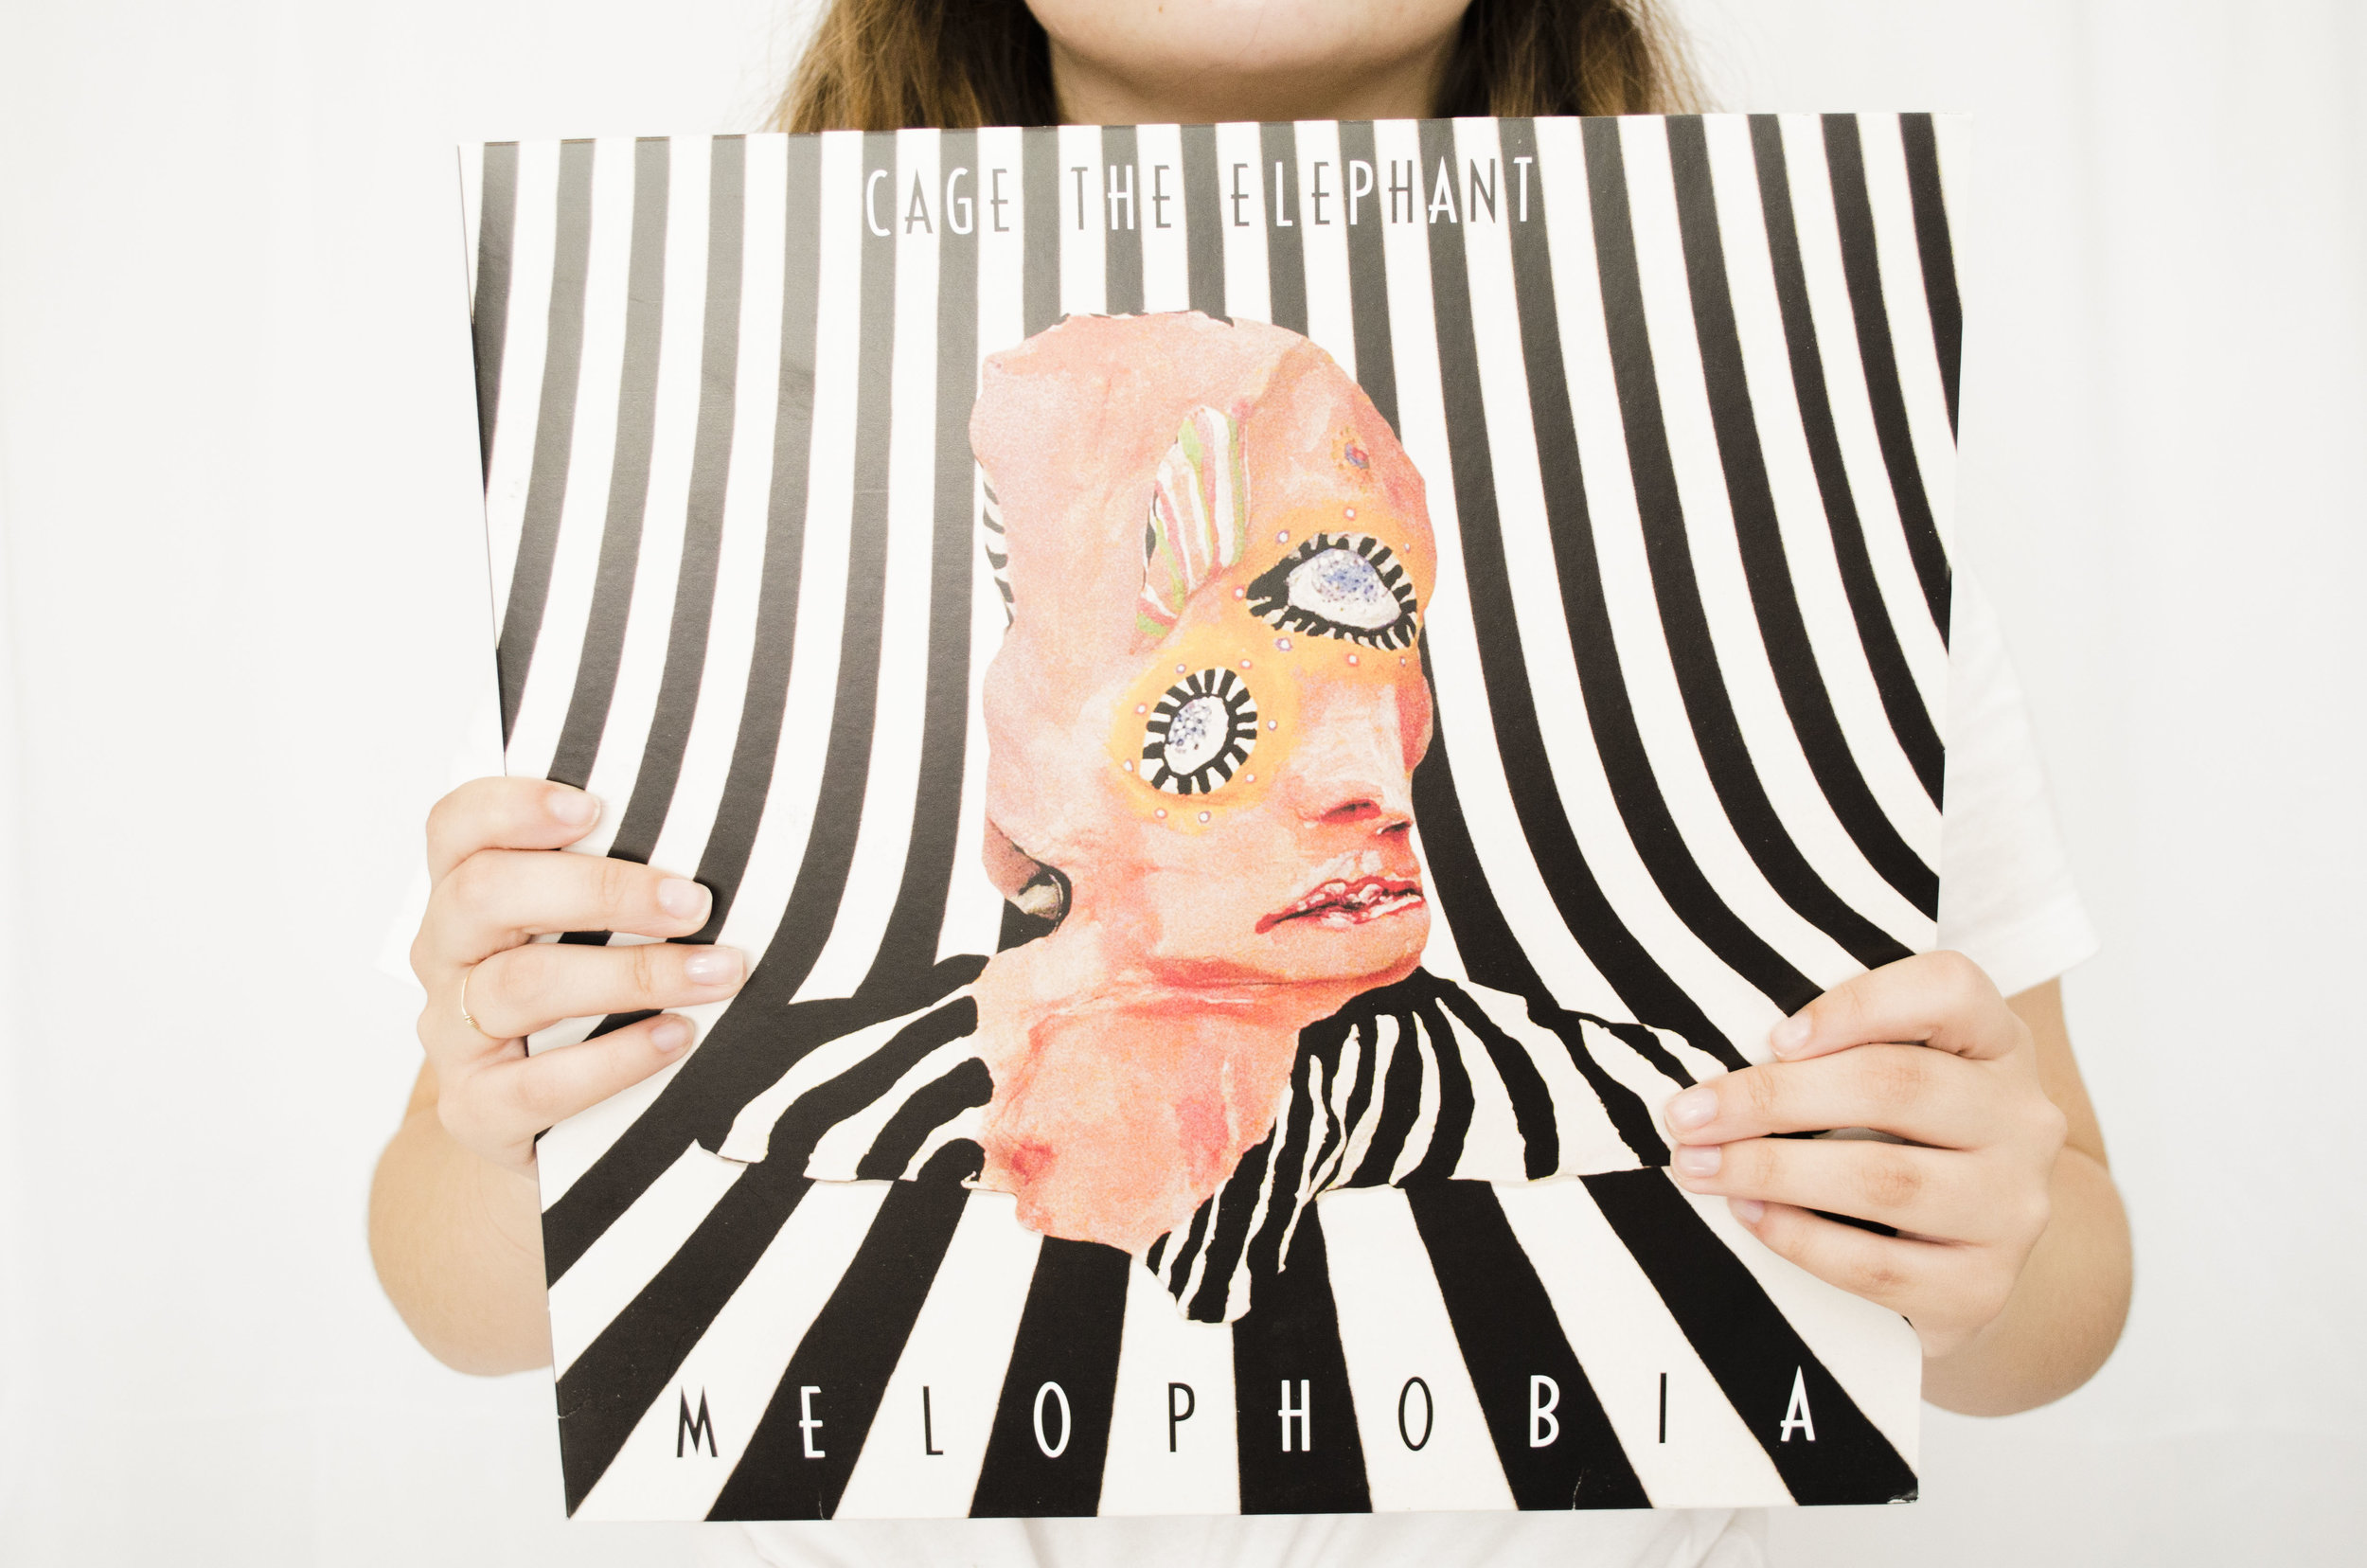 Melophobia  - by Cage The Elephant